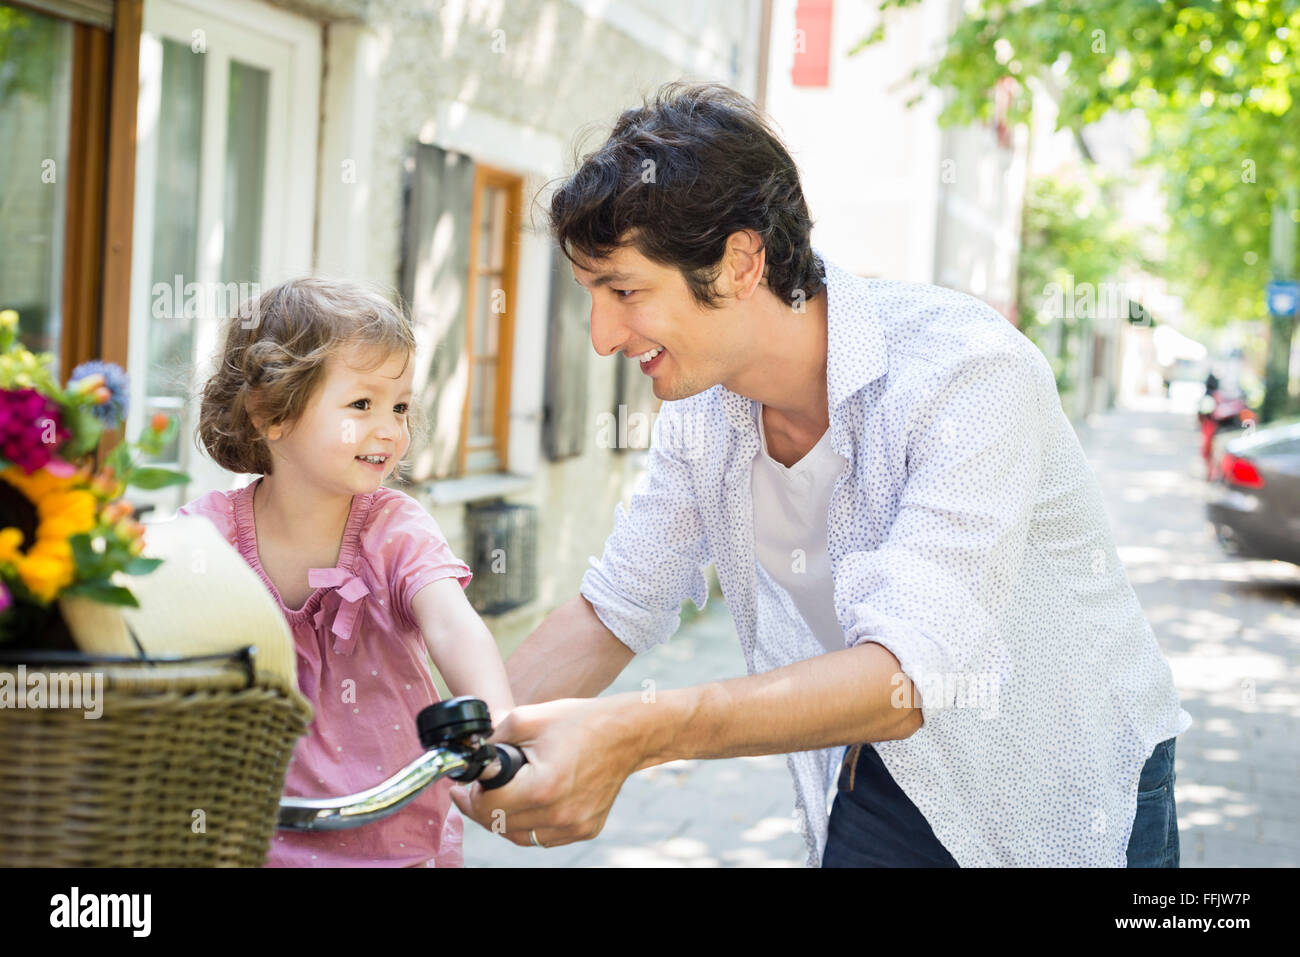 Father and daughter pushing bike together - Stock Image